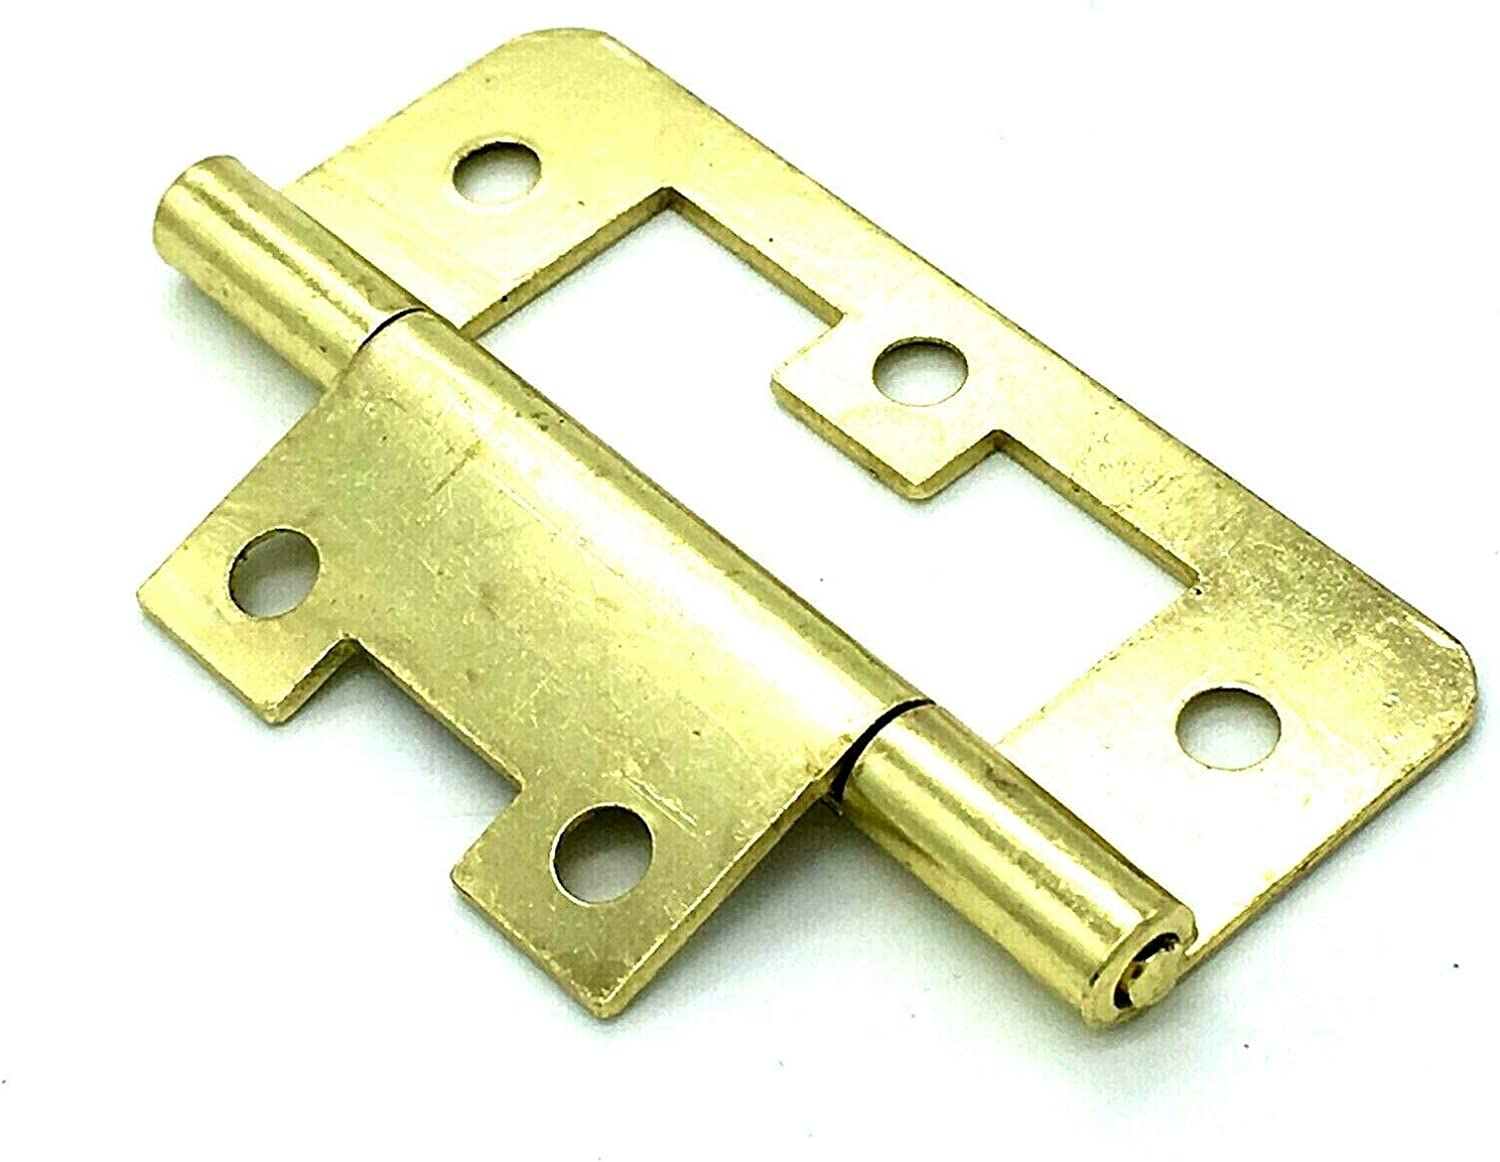 2 x Flush Hinges 63mm Easy fix Surface Mount Brass Plated Cupboard Door Hinges